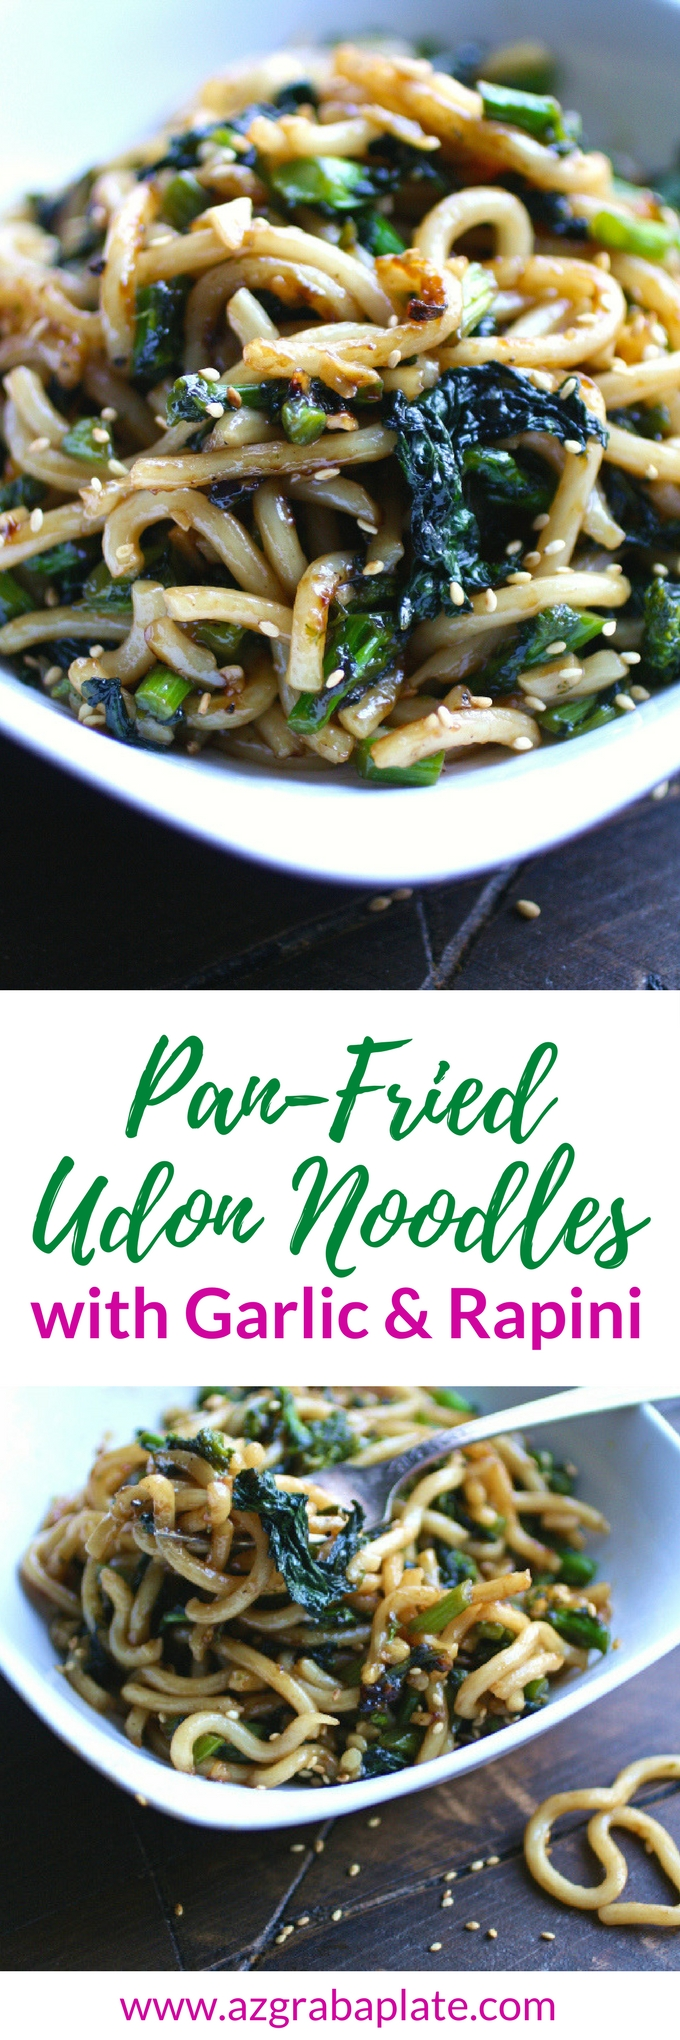 Pan-Fried Udon Noodles with Garlic and Rapini is an amazingly delicious and simple dish you'll love. It's so easy to make this noodle dish!